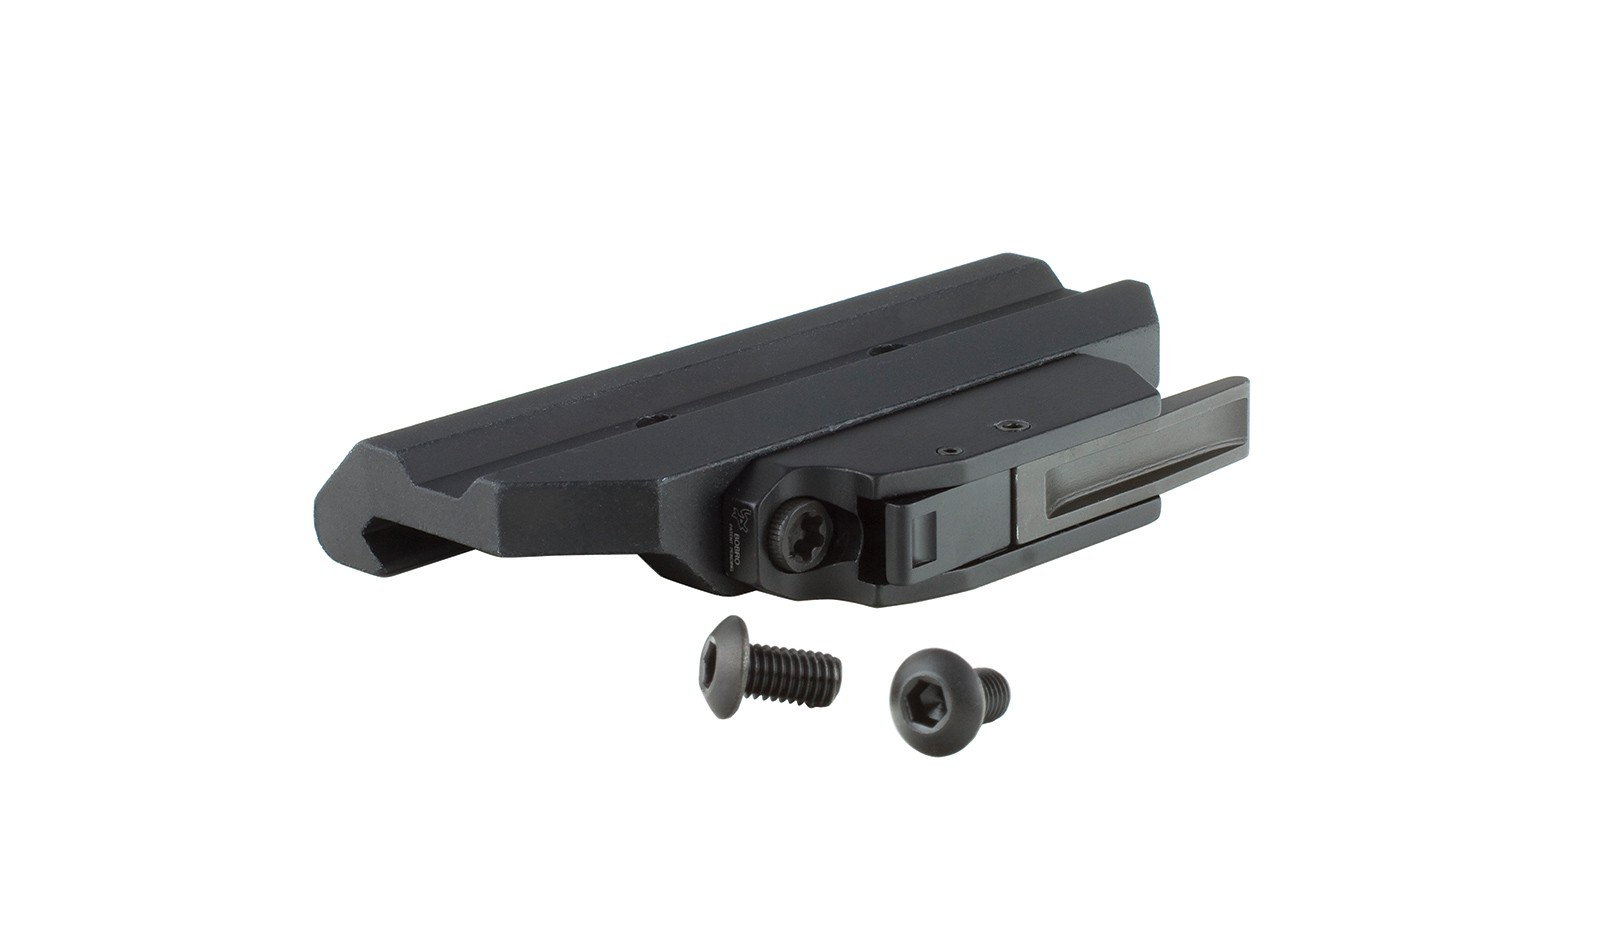 Trijicon Quick Release Mount for 3.5x, 4x, and 5.5x, ACOG®, 1-6x VCOG®, and 1x42 Reflex (w/ ACOG Base)